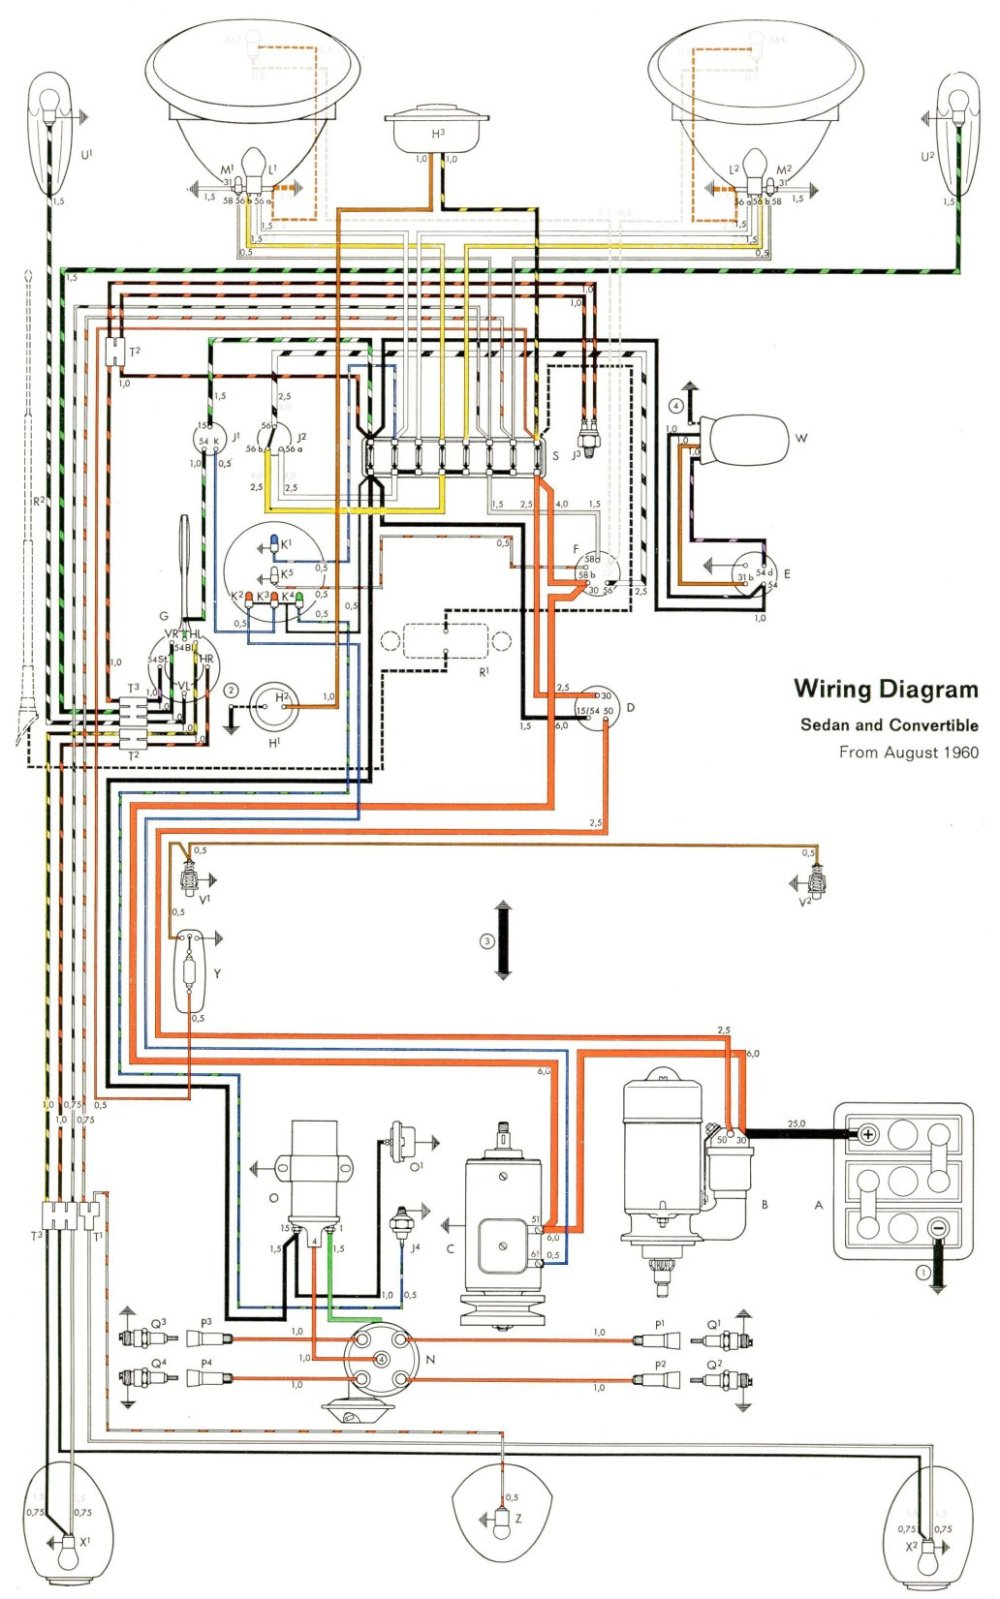 medium resolution of thesamba com type 1 wiring diagrams 1974 vw beetle alternator wiring diagram 1974 vw wiring diagram